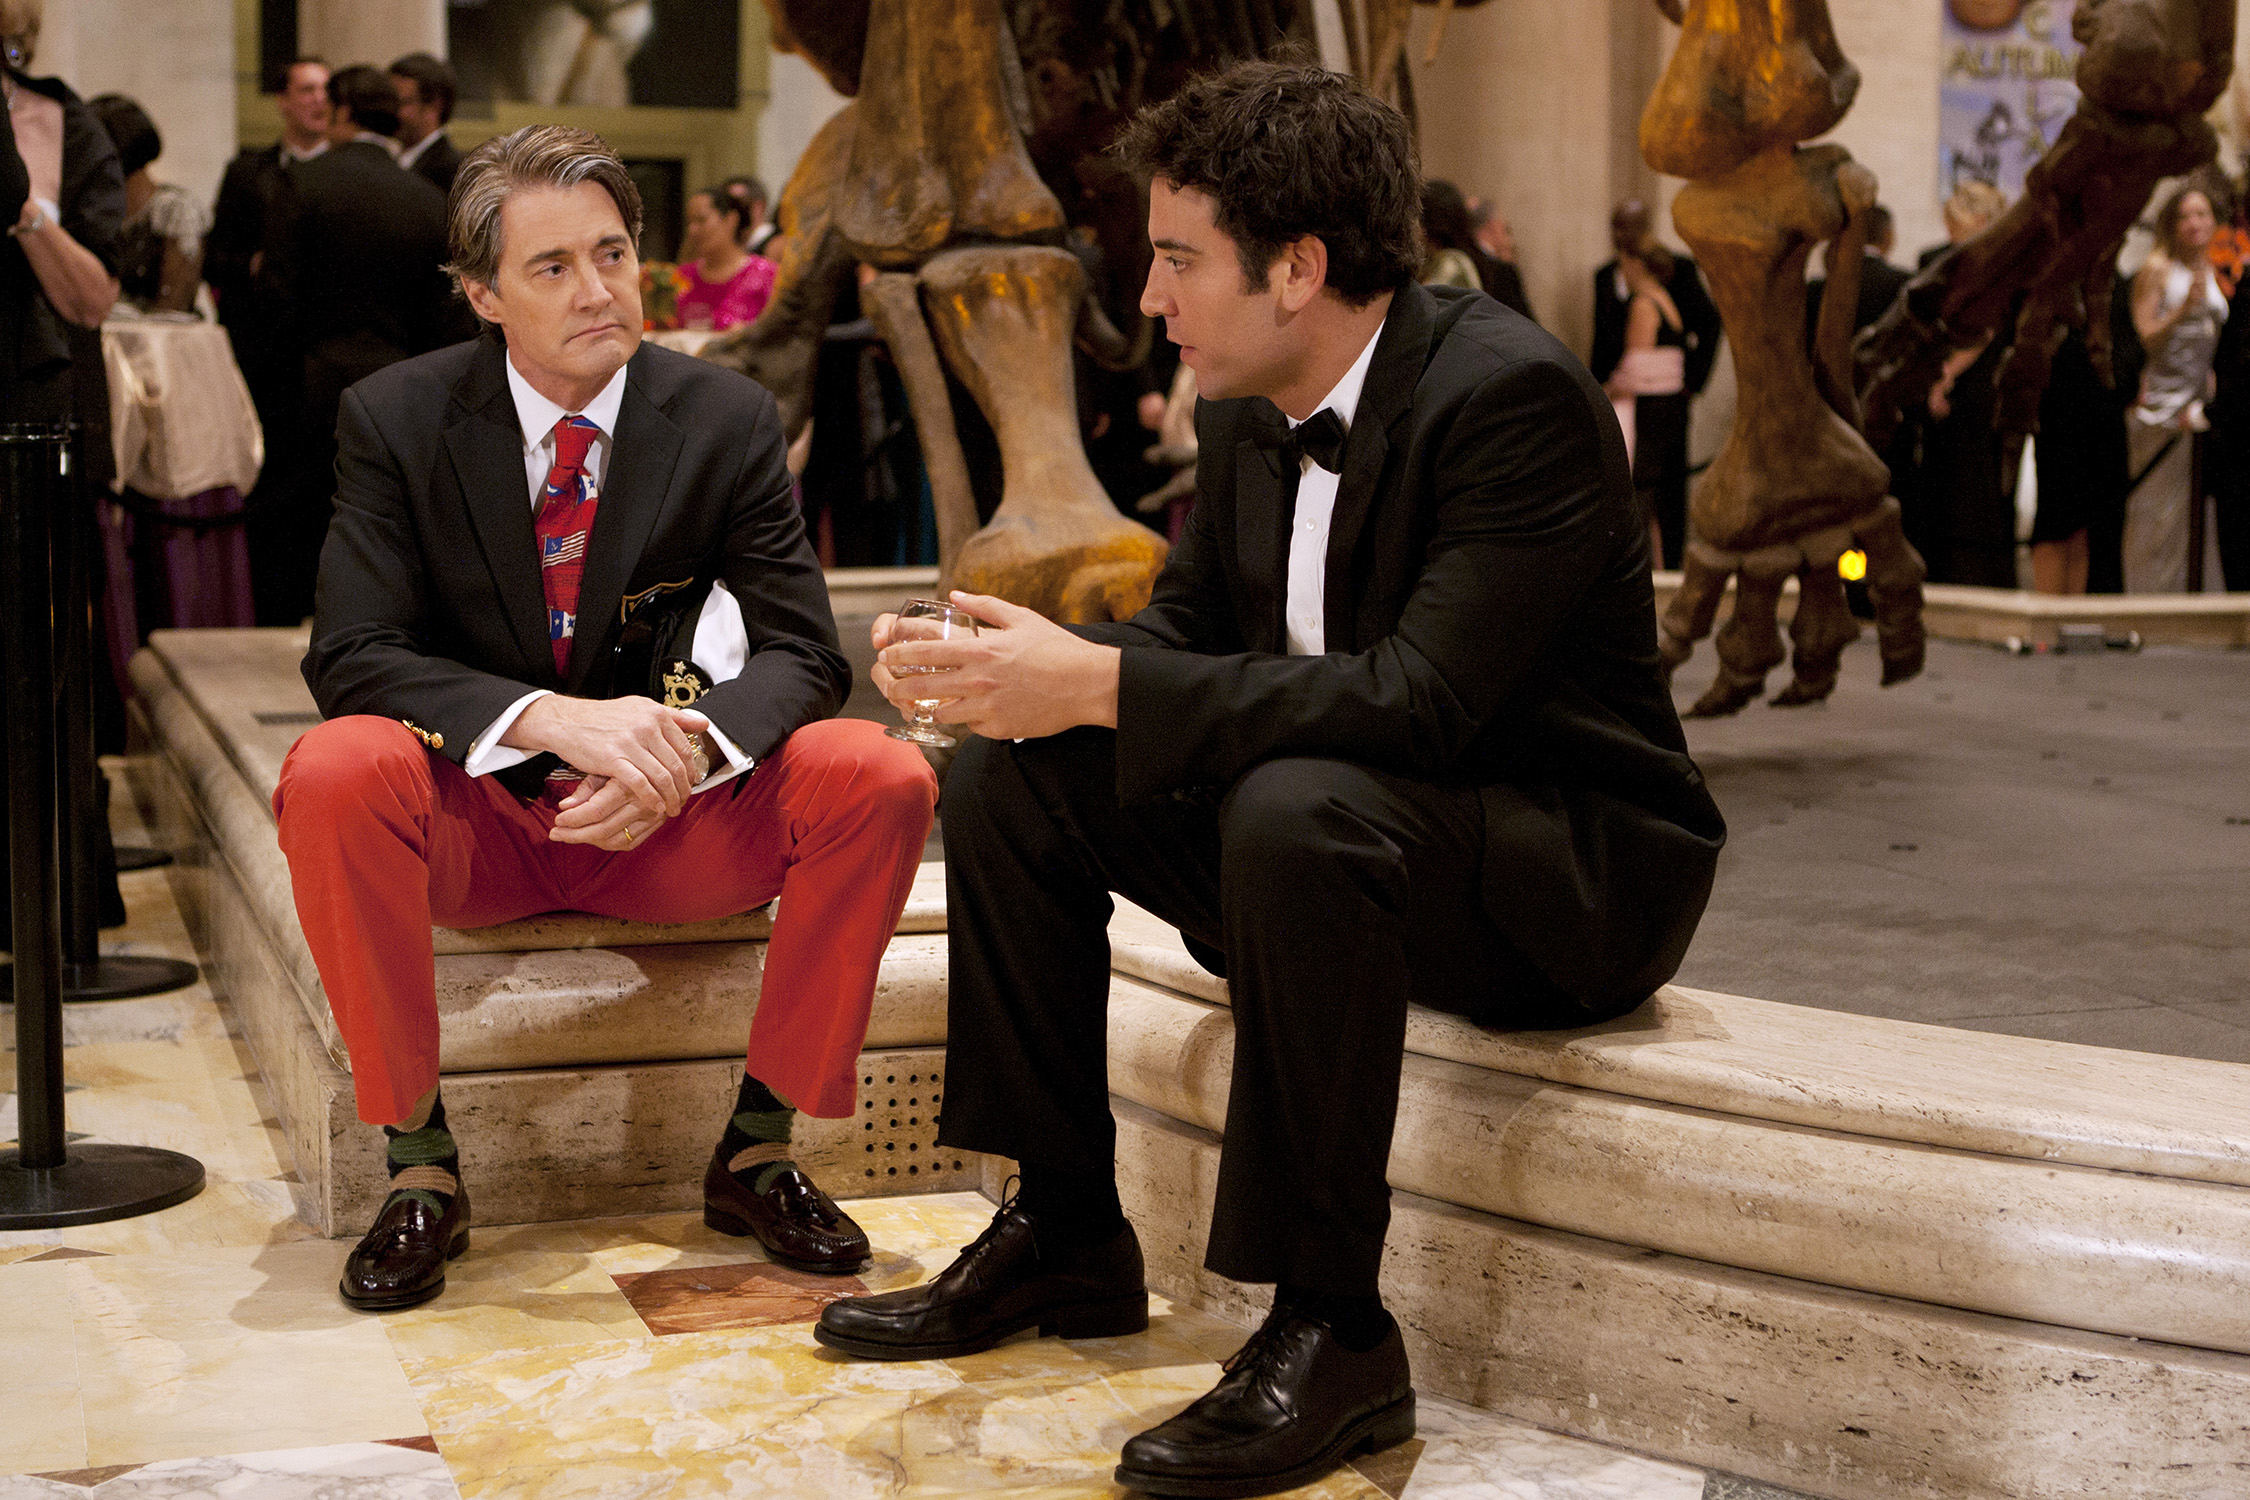 "Josh Radnor as Ted (right) meets Kyle MacLachlan as the Captain (left) at a Museum of Natural History fundraiser. ""Natural History,"" Season 6, Episode 8 of How I Met Your Mother. Photo: Matt Kennedy/FOX © FOX Television. All Rights Reserved."